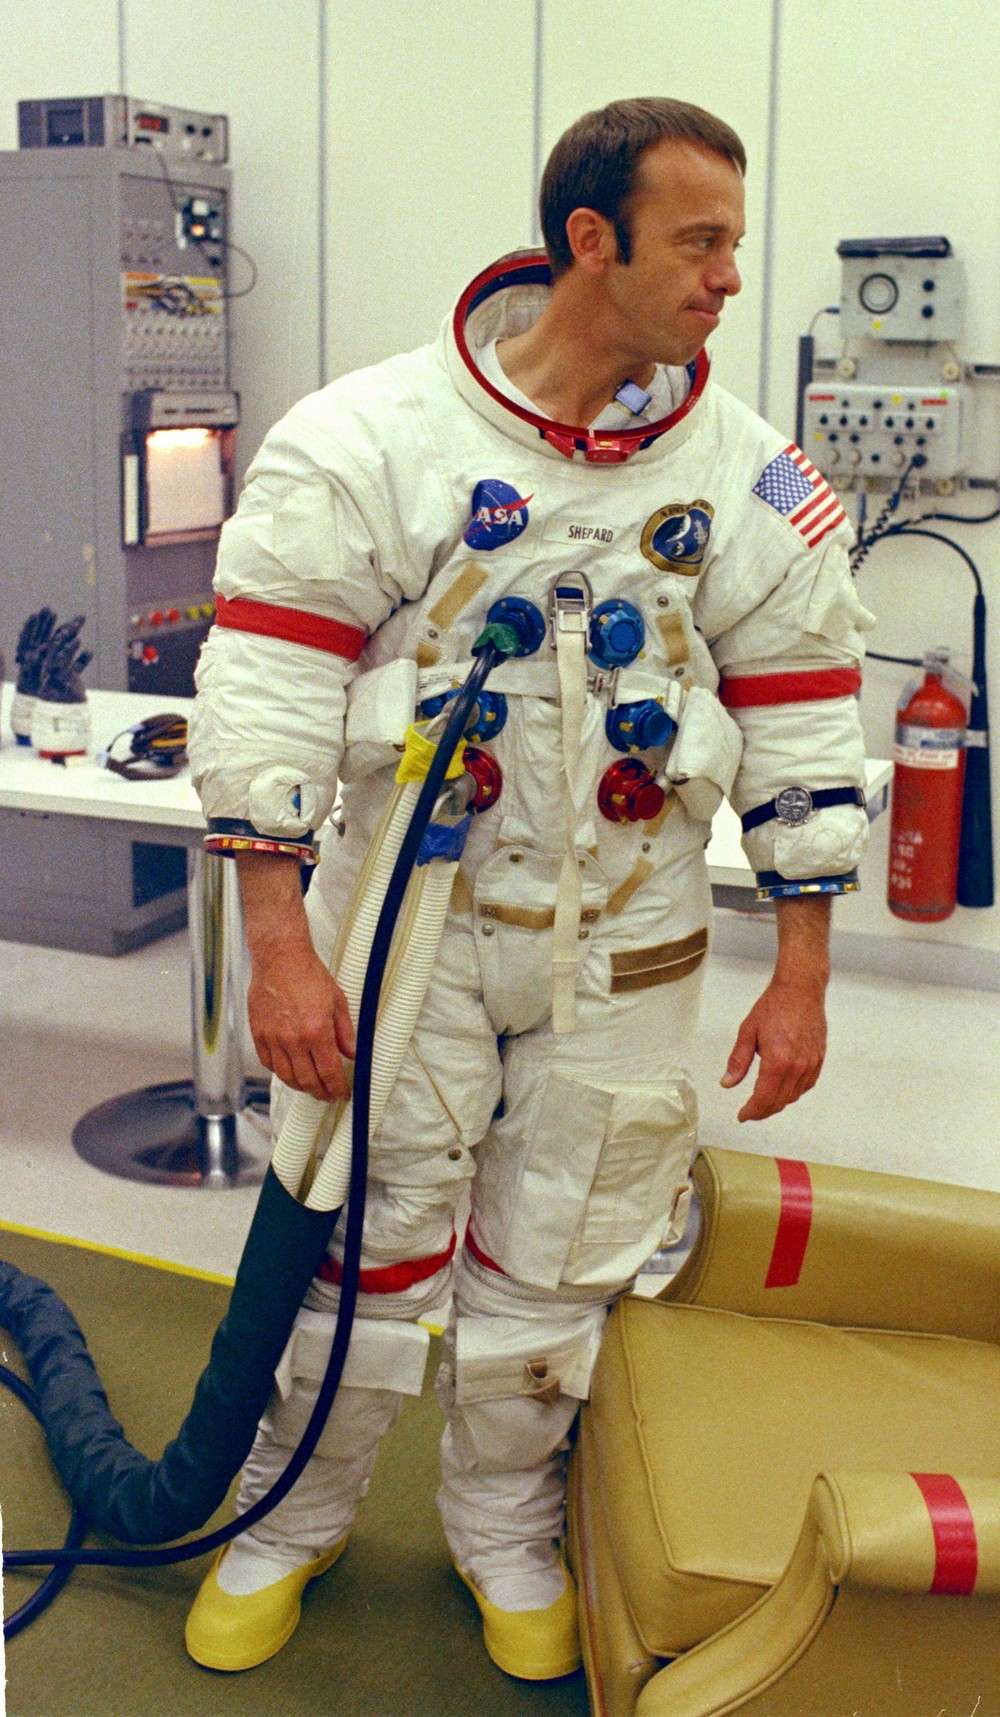 Alan Shepard en 1971 avant son vol sur la mission Apollo 14. © Nasa